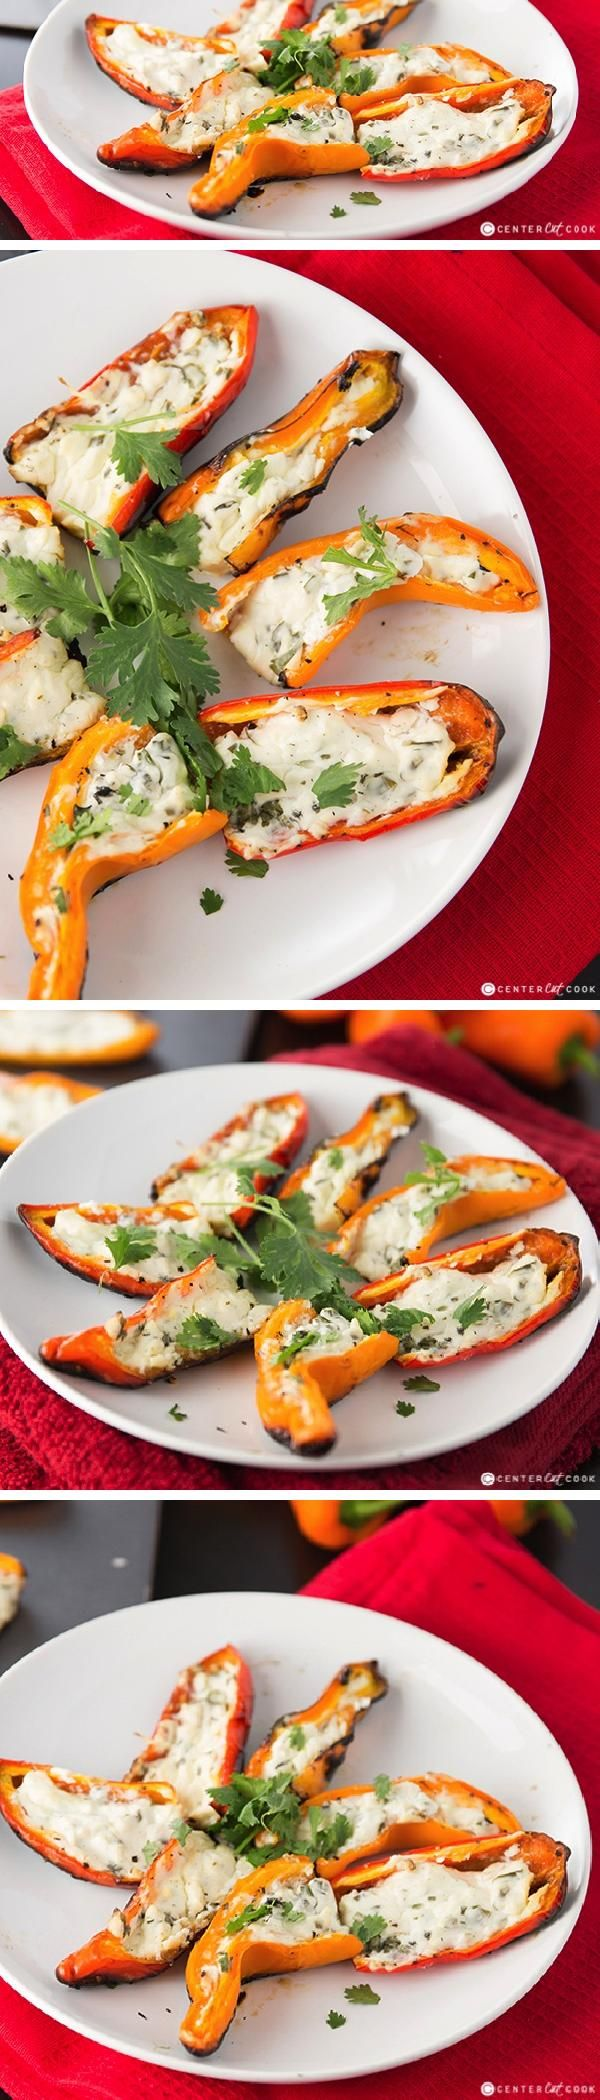 Light GRILLED STUFFED (vegetarian) MINI BELL PEPPERS work perfectly as a side dish, or as an appetizer! Stuffed with cream cheese, a little sour cream, cilantro and lime, these stuffed bell peppers are flavorful and delicious!